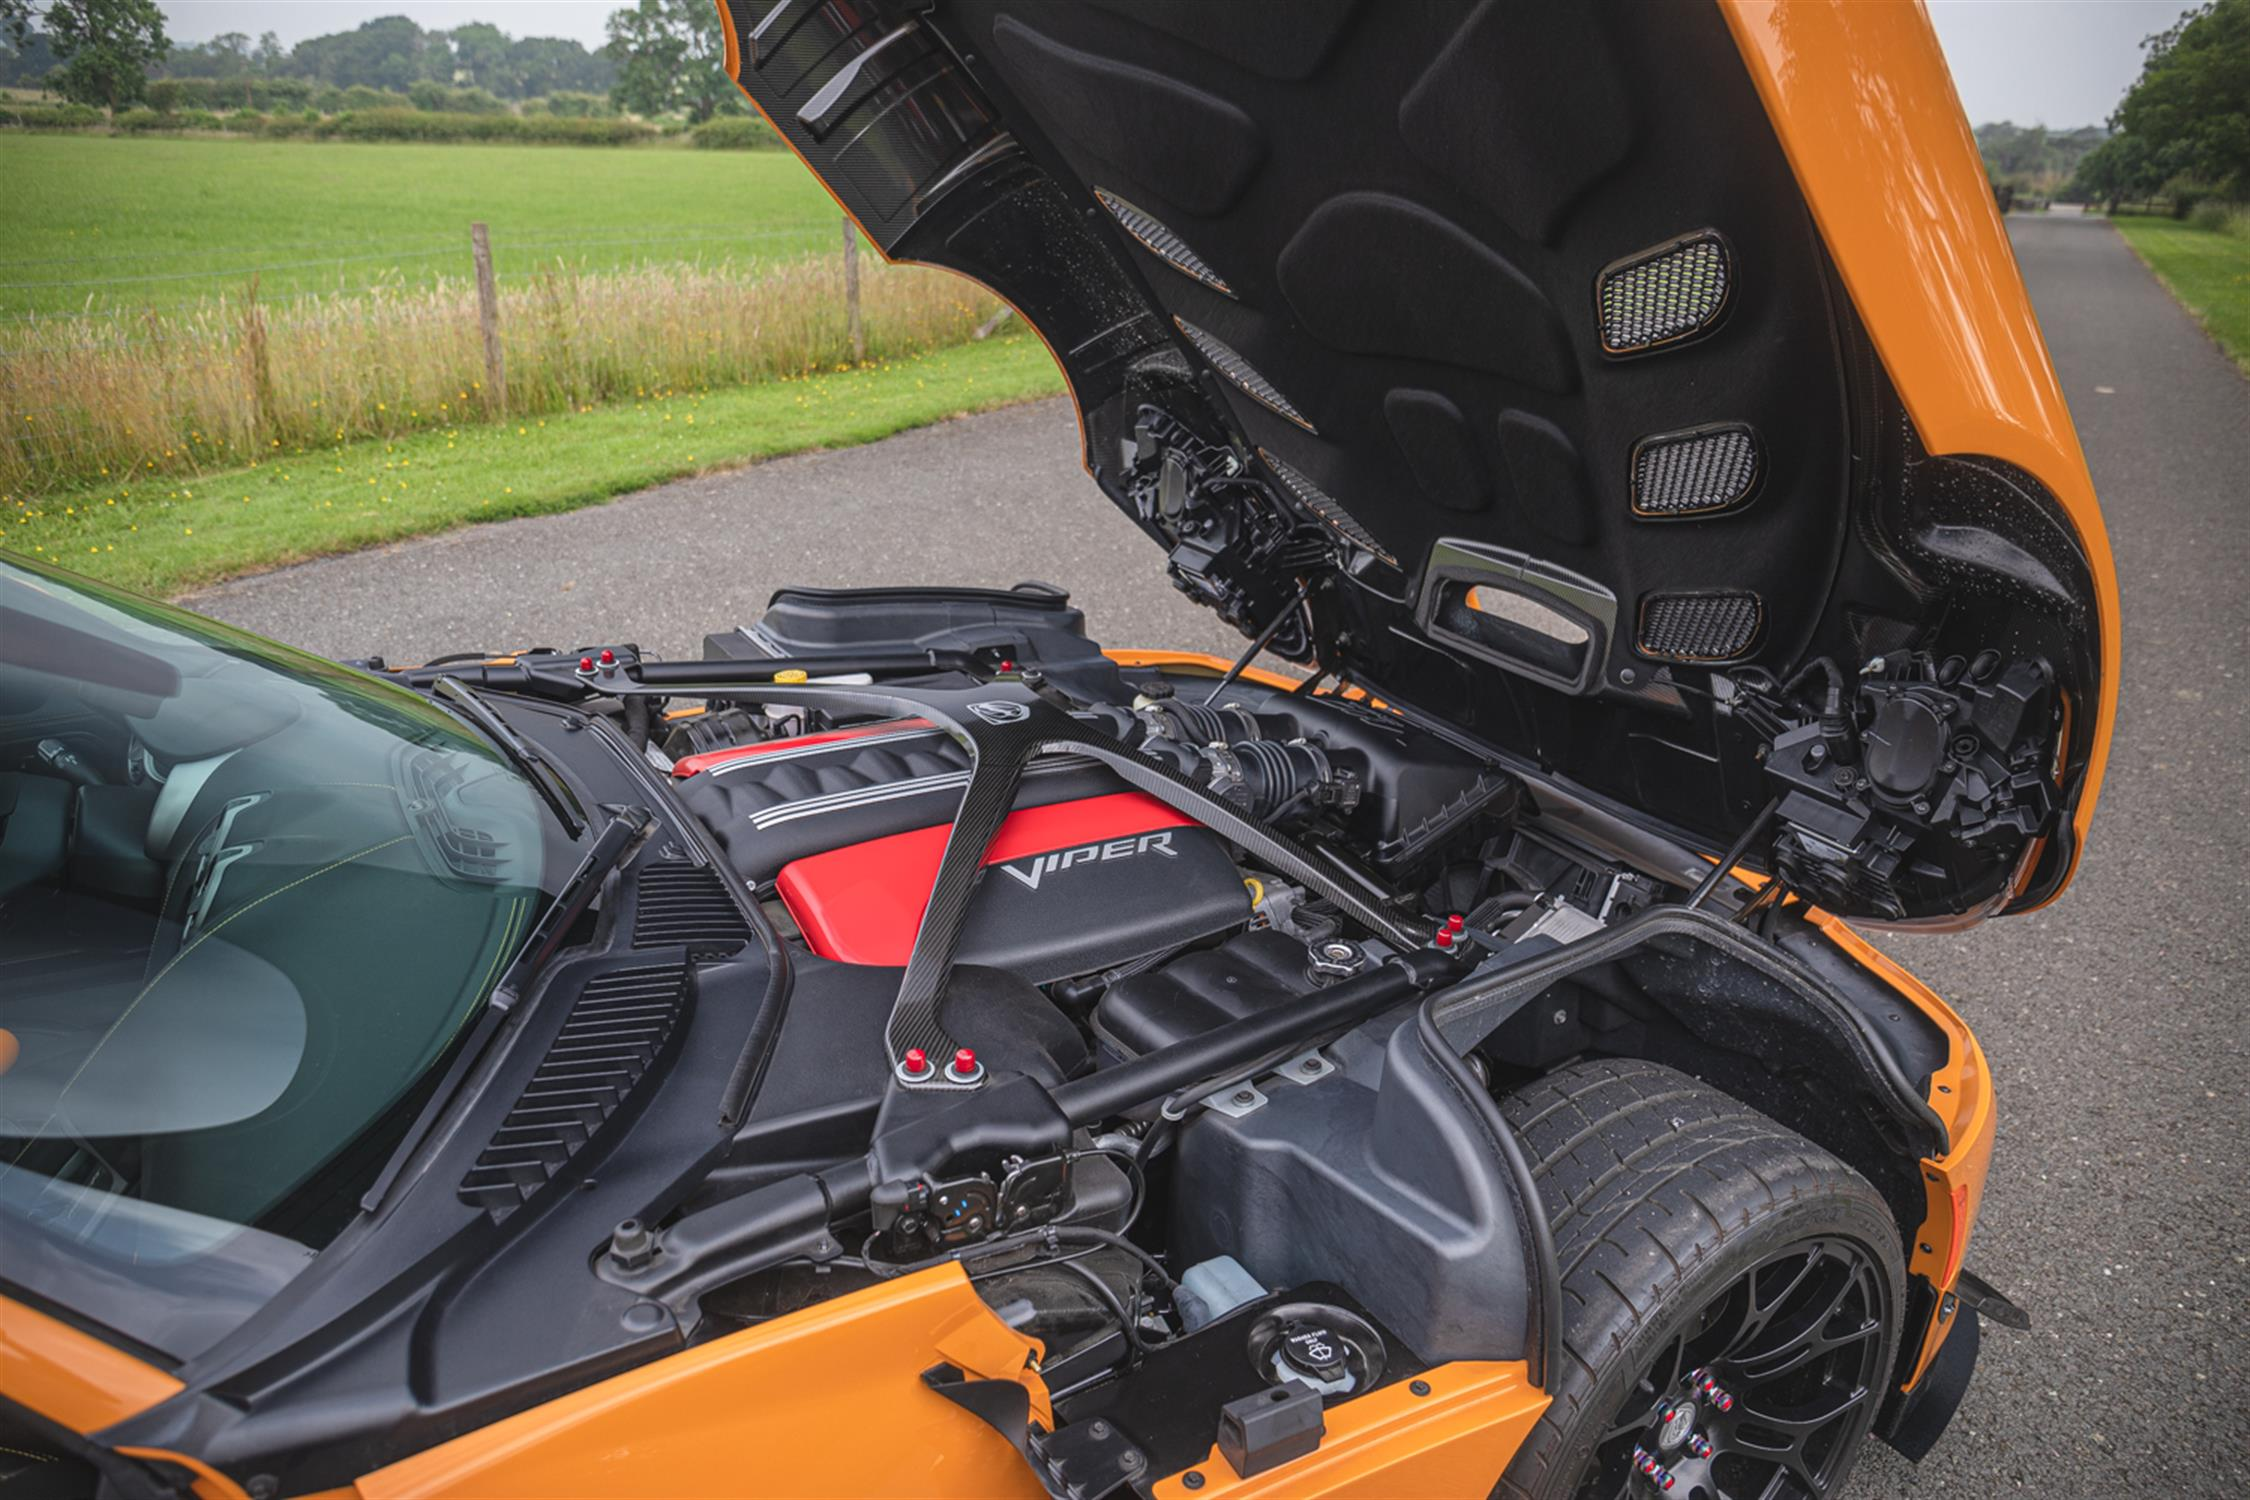 2015 Dodge Viper TA 2.0 6-Speed Coupe - Image 10 of 10